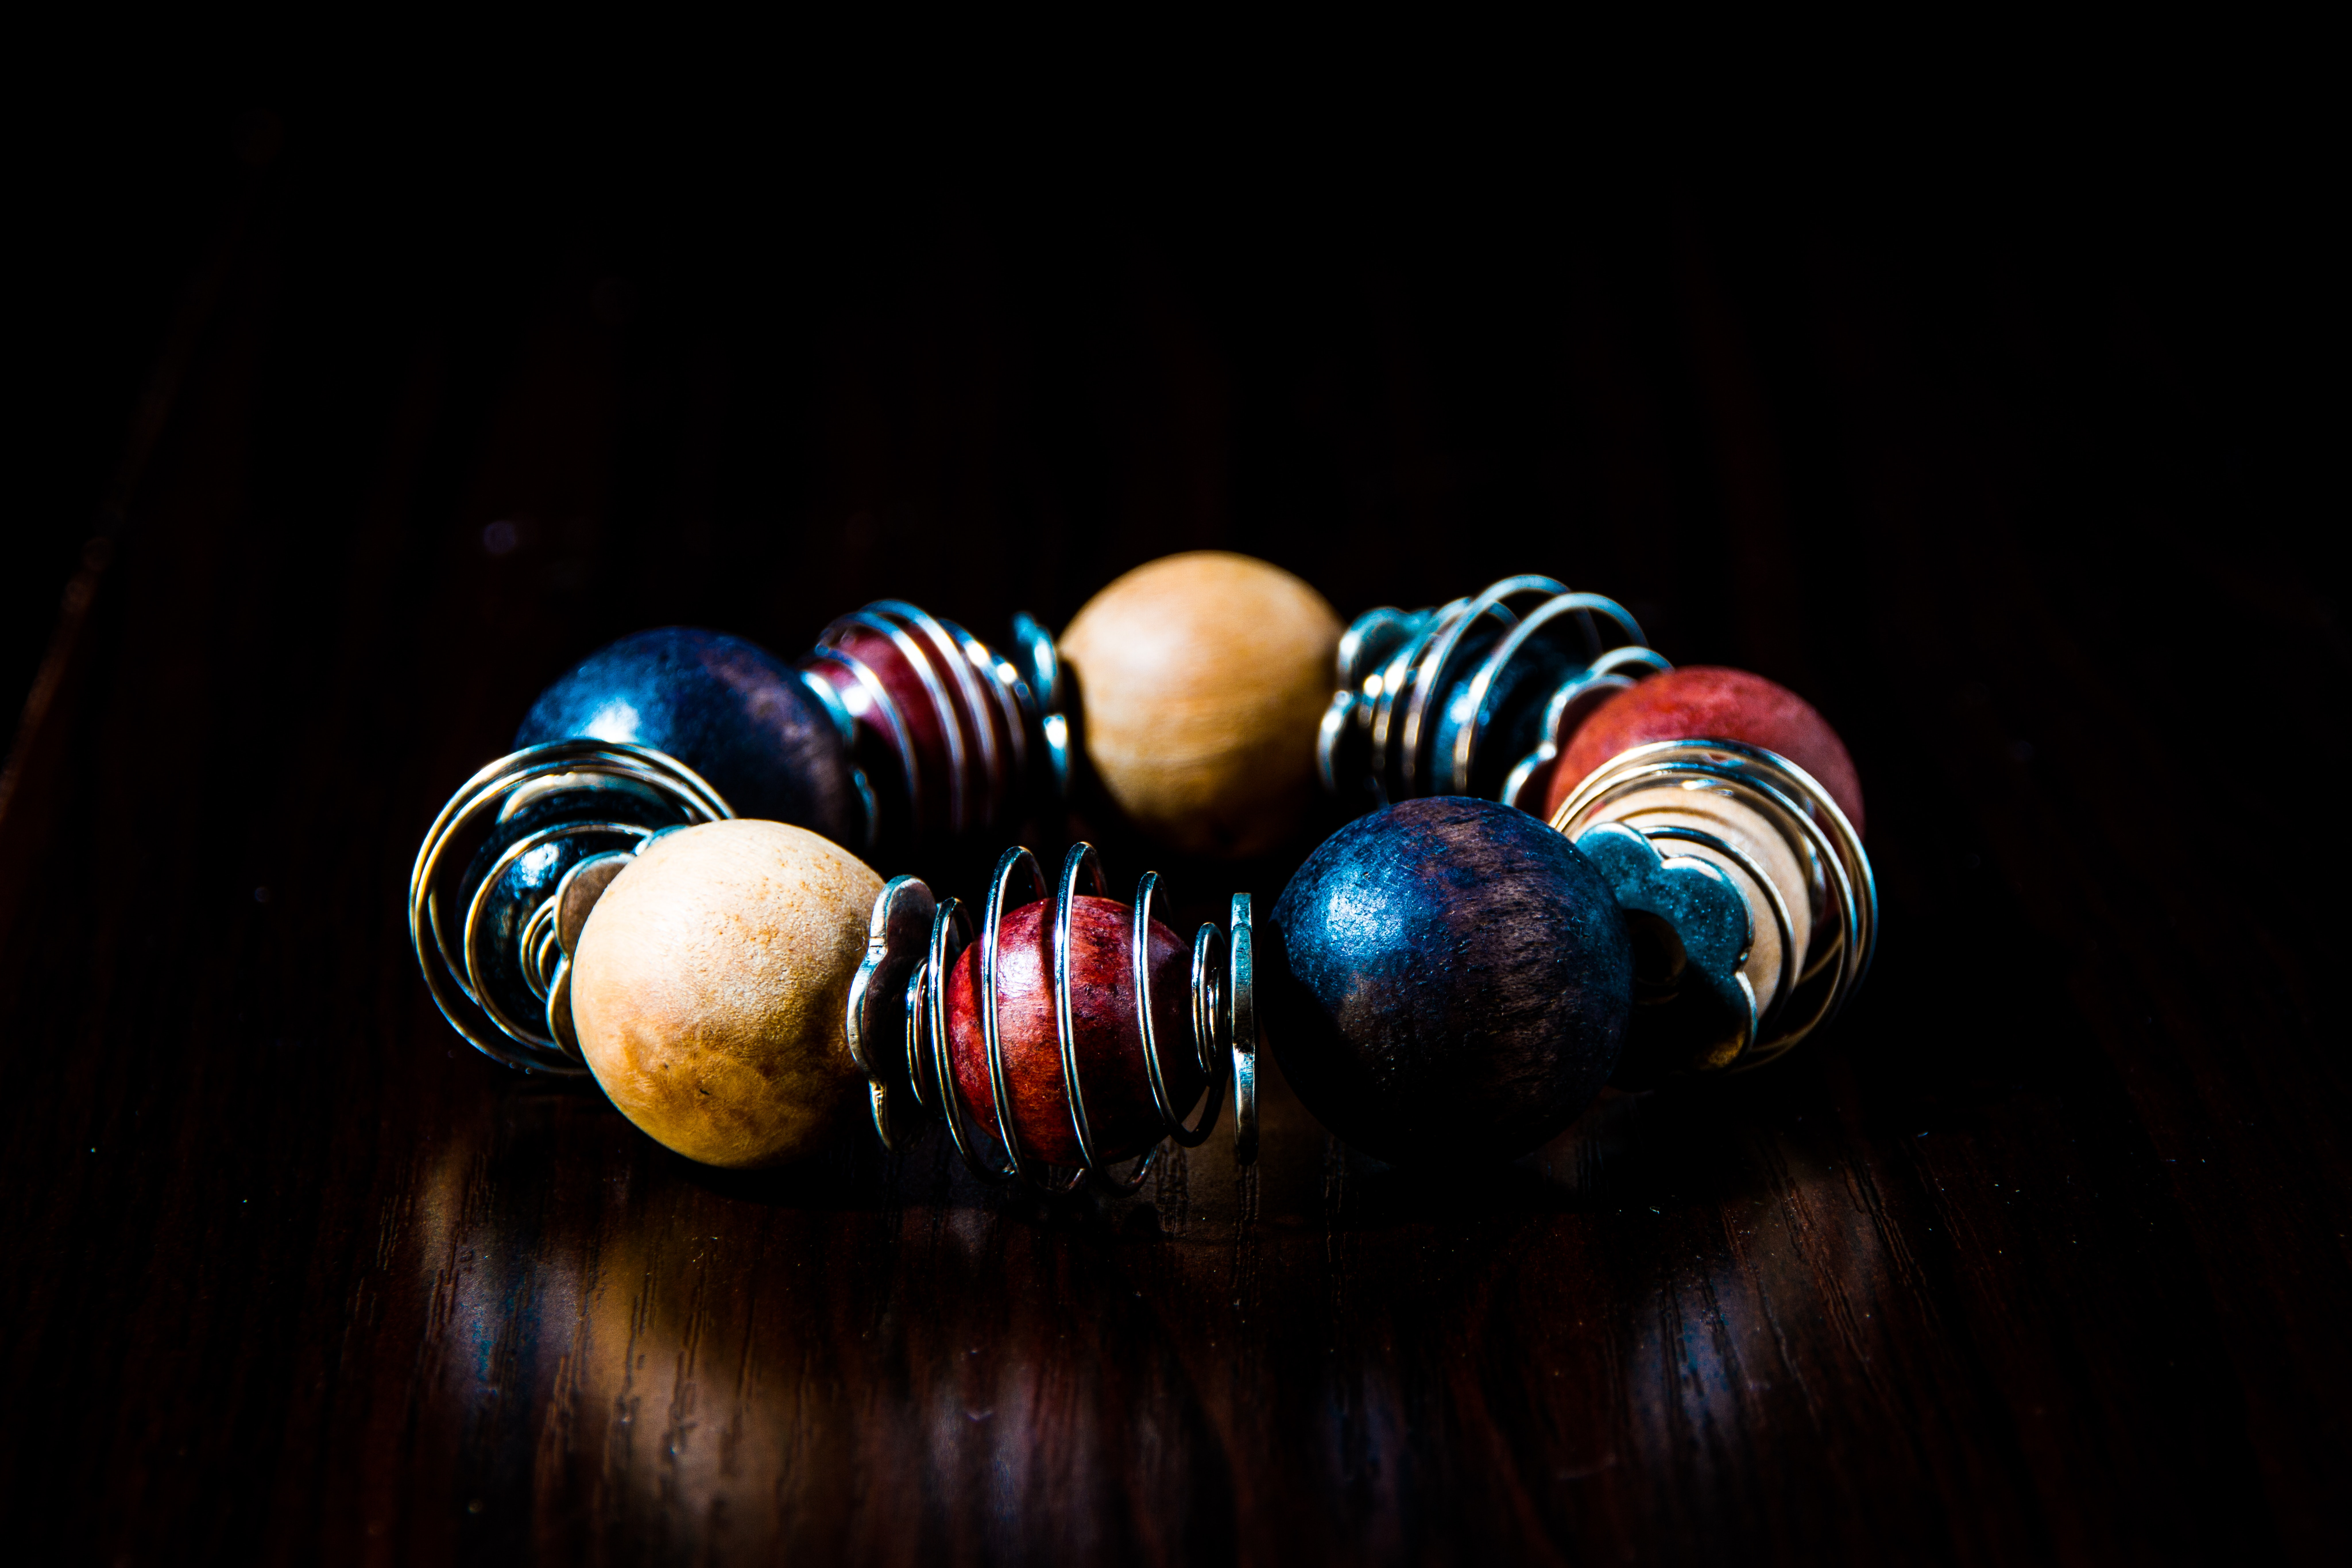 Blue, Red, Beige, and Silver Beaded Bracelet, Art, Jewelry, Spiral, Shining, HQ Photo